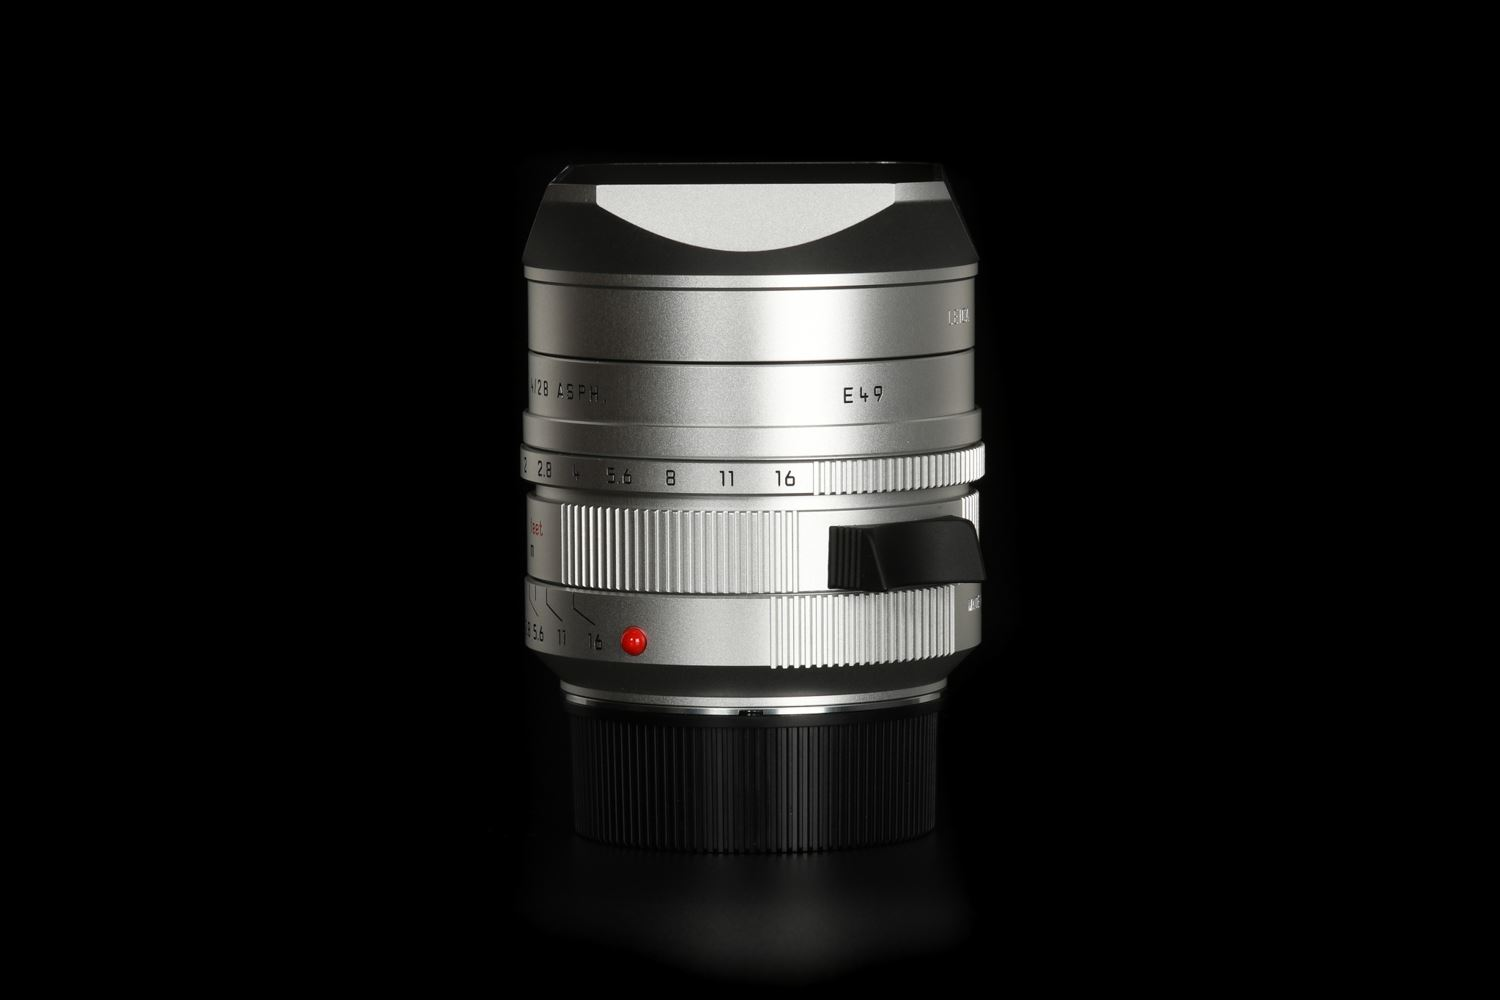 Picture of Summilux-M 28mm f/1.4 ASPH., silver anodized finish